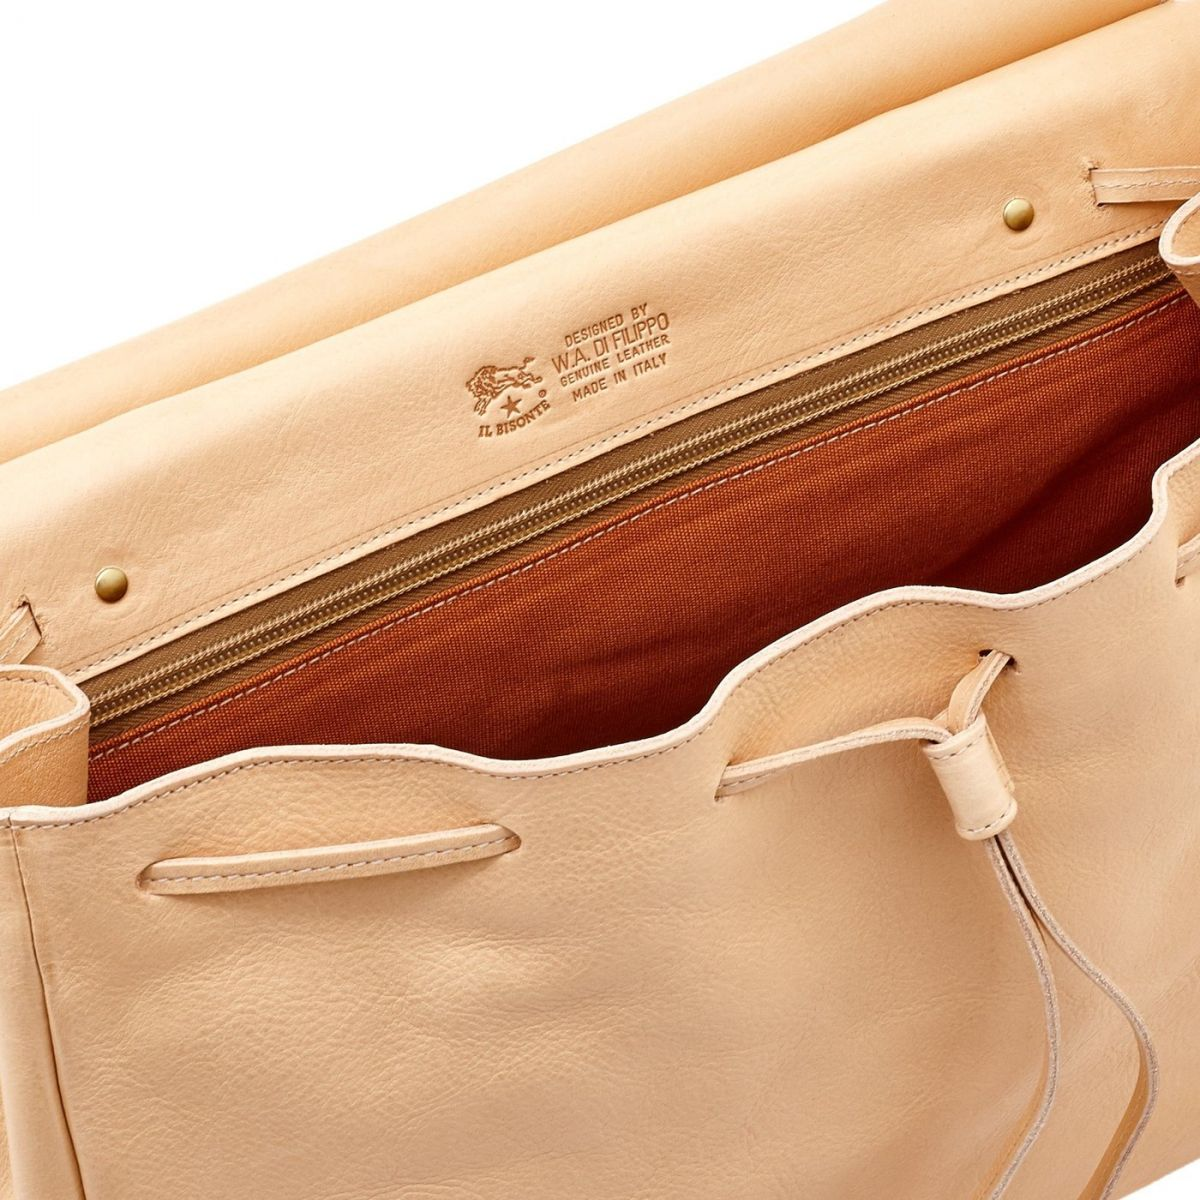 Women's Handbag Tornabuoni in Cowhide Double Leather BTH051 color Natural | Details